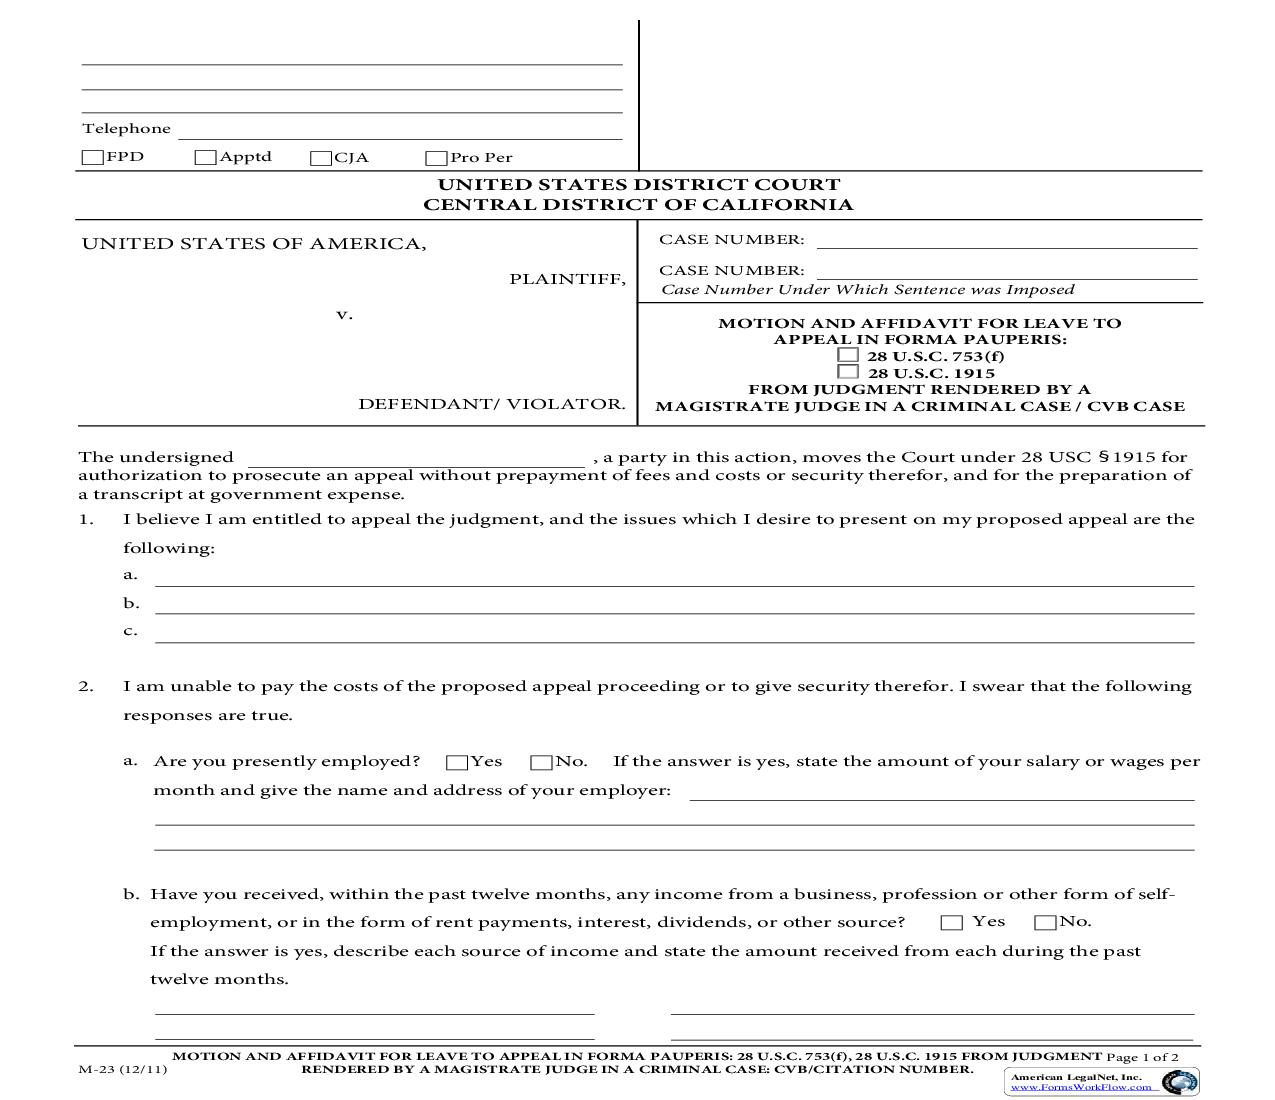 Motion And Affidavit For Leave In Forma Pauperis {M-23} | Pdf Fpdf Doc Docx | California